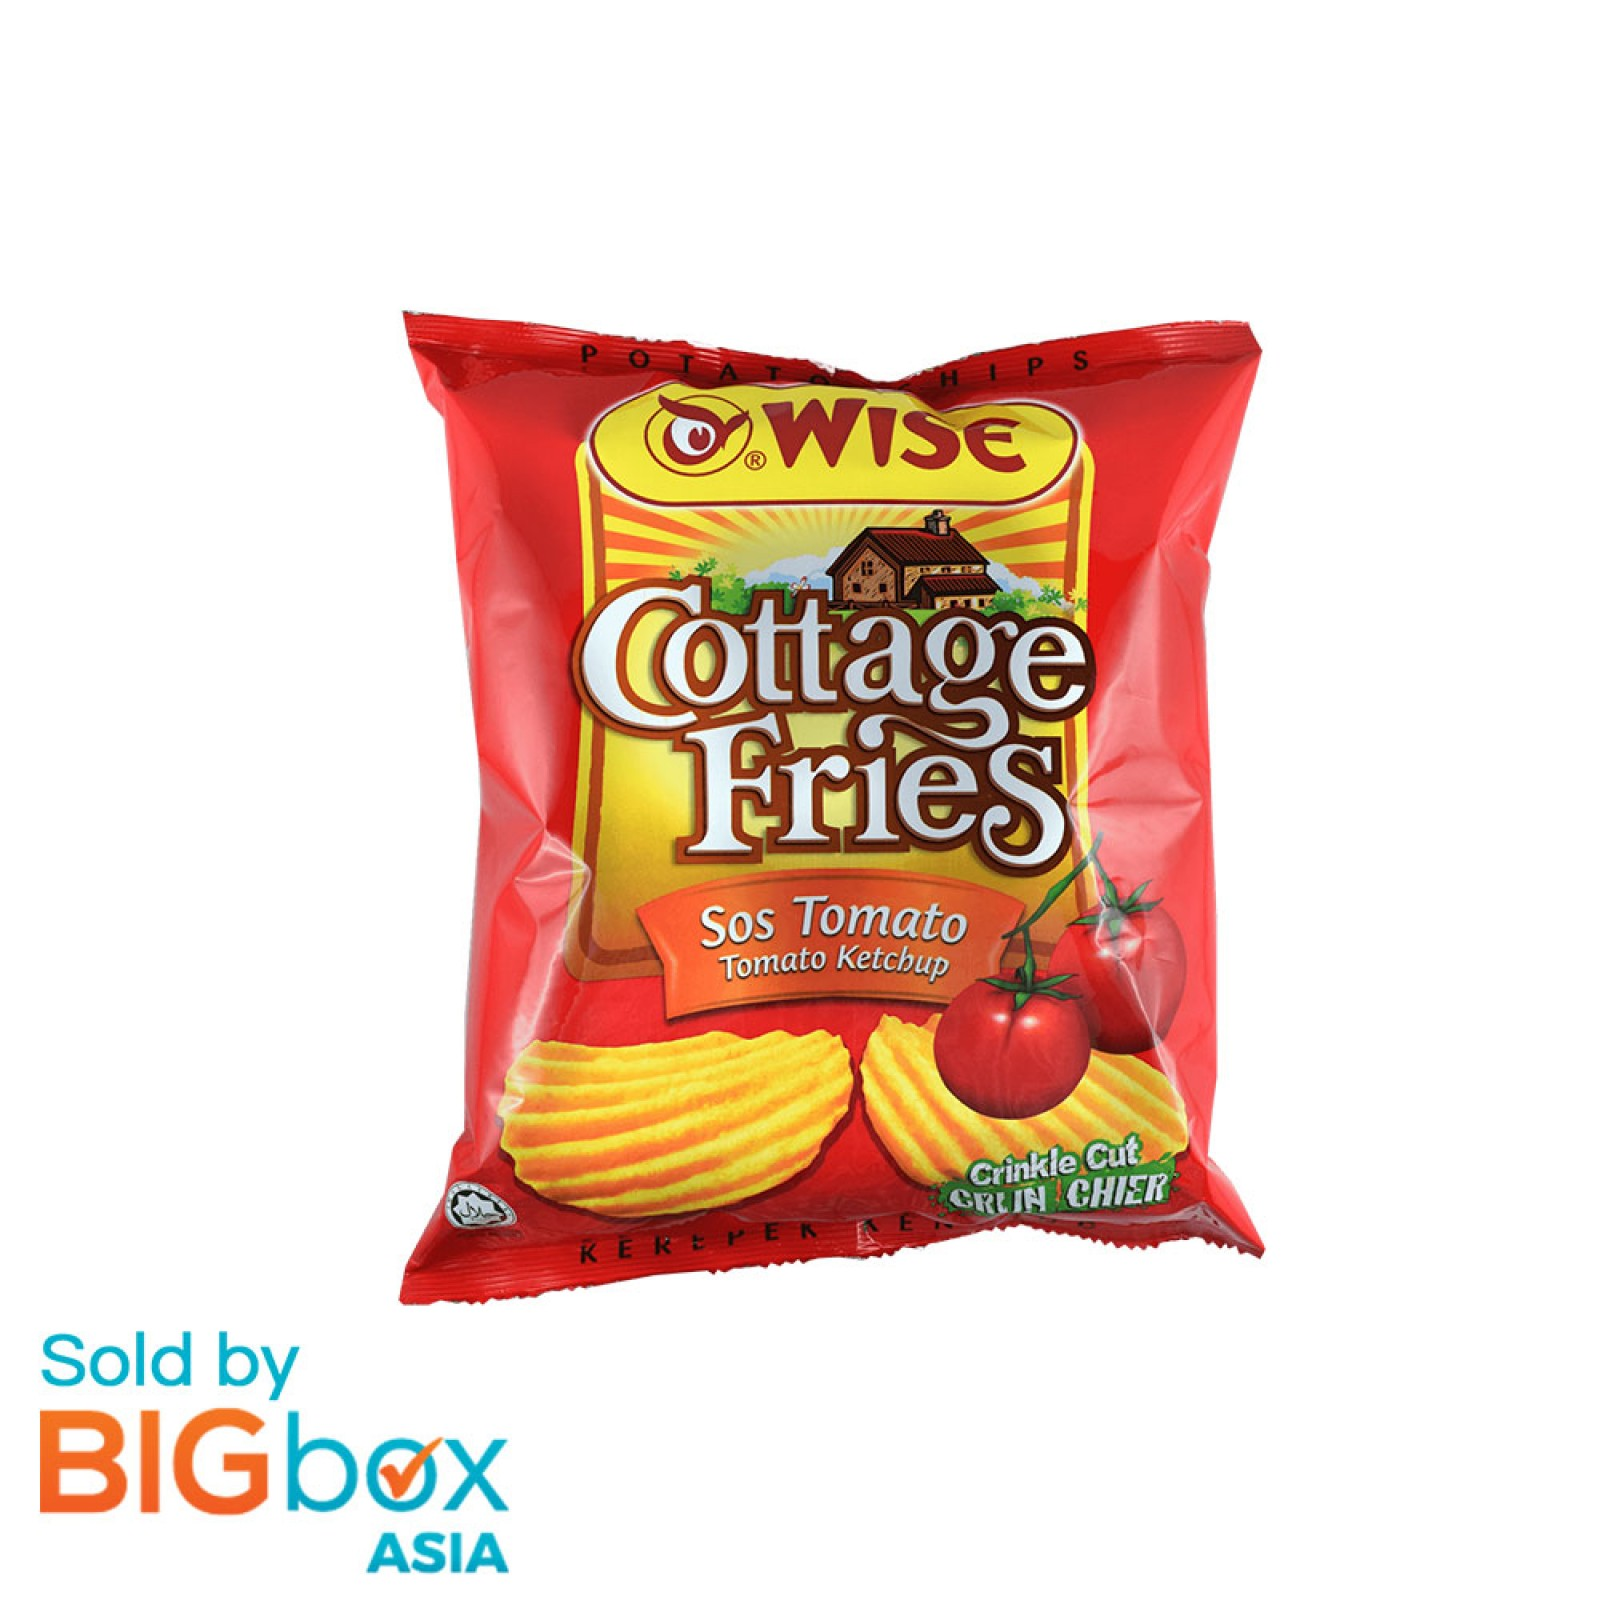 Wise Cottage Fries Tomato Ketchup (1 carton) 36 x 65g - US